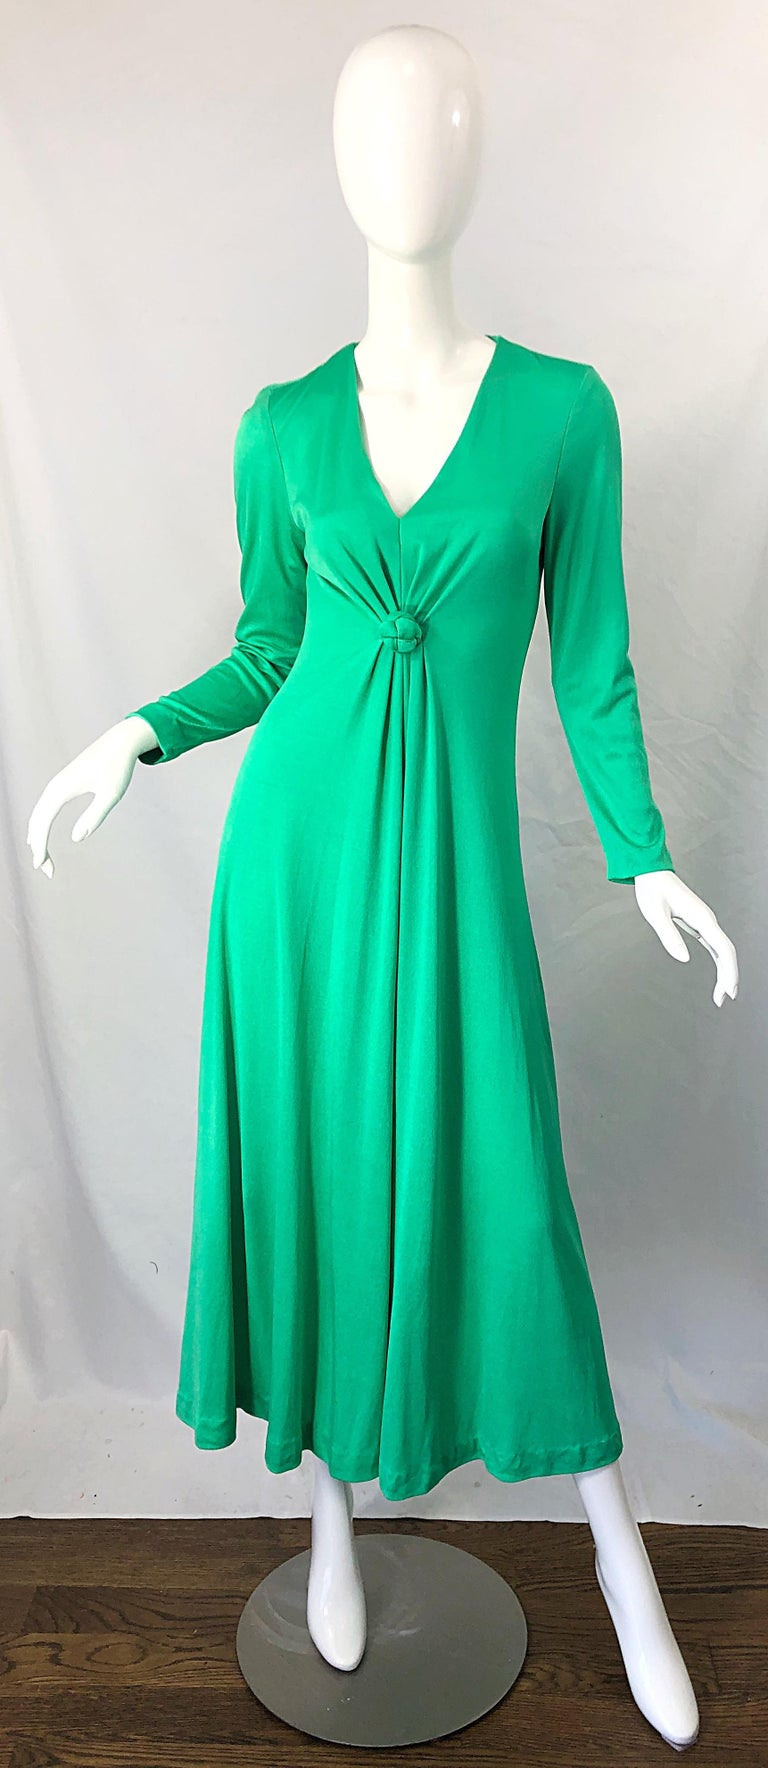 Chic 1970s FREDRICK'S OF HOLLYWOOD kelly green jersey maxi dress ! Features the perfect green color that can be worn all year. Knotted applique at center chest. Hidden zipper up the back with hook-and-eye closure. Can easily be worn for day or